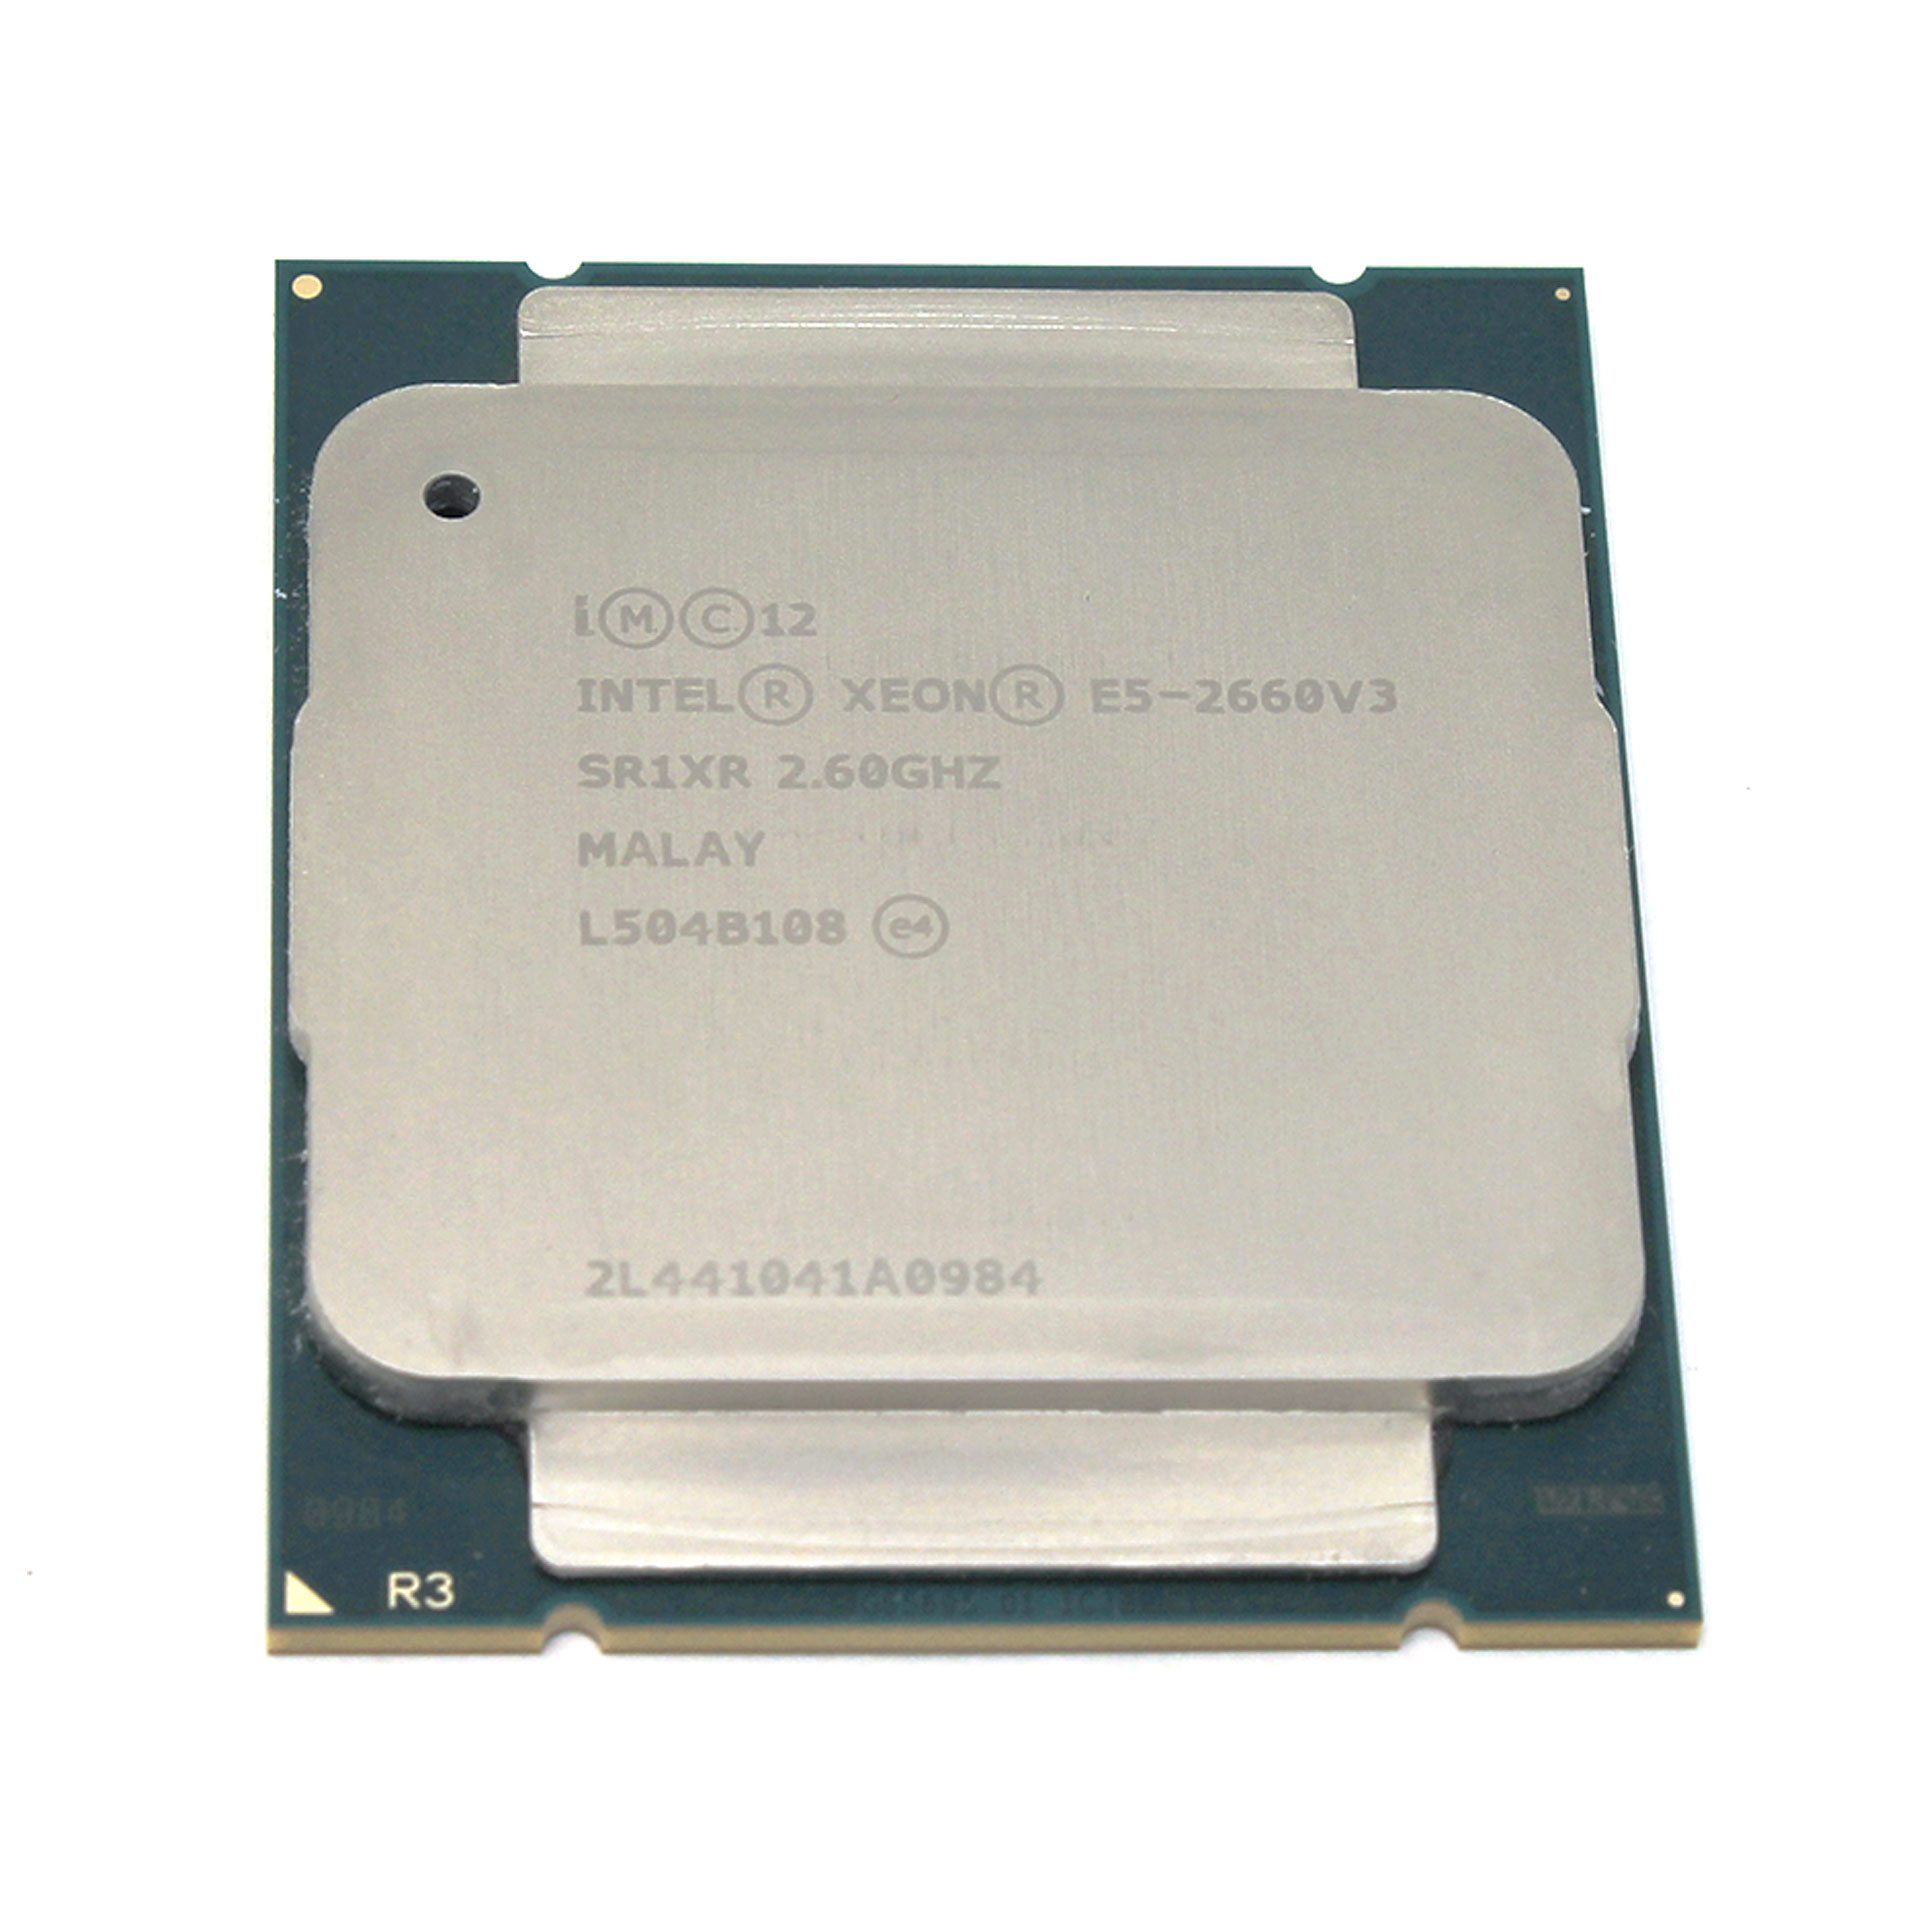 Intel XEON E5-2660v3 2.60 GHZ SR1XR 10 Core 25MB Processor CPU